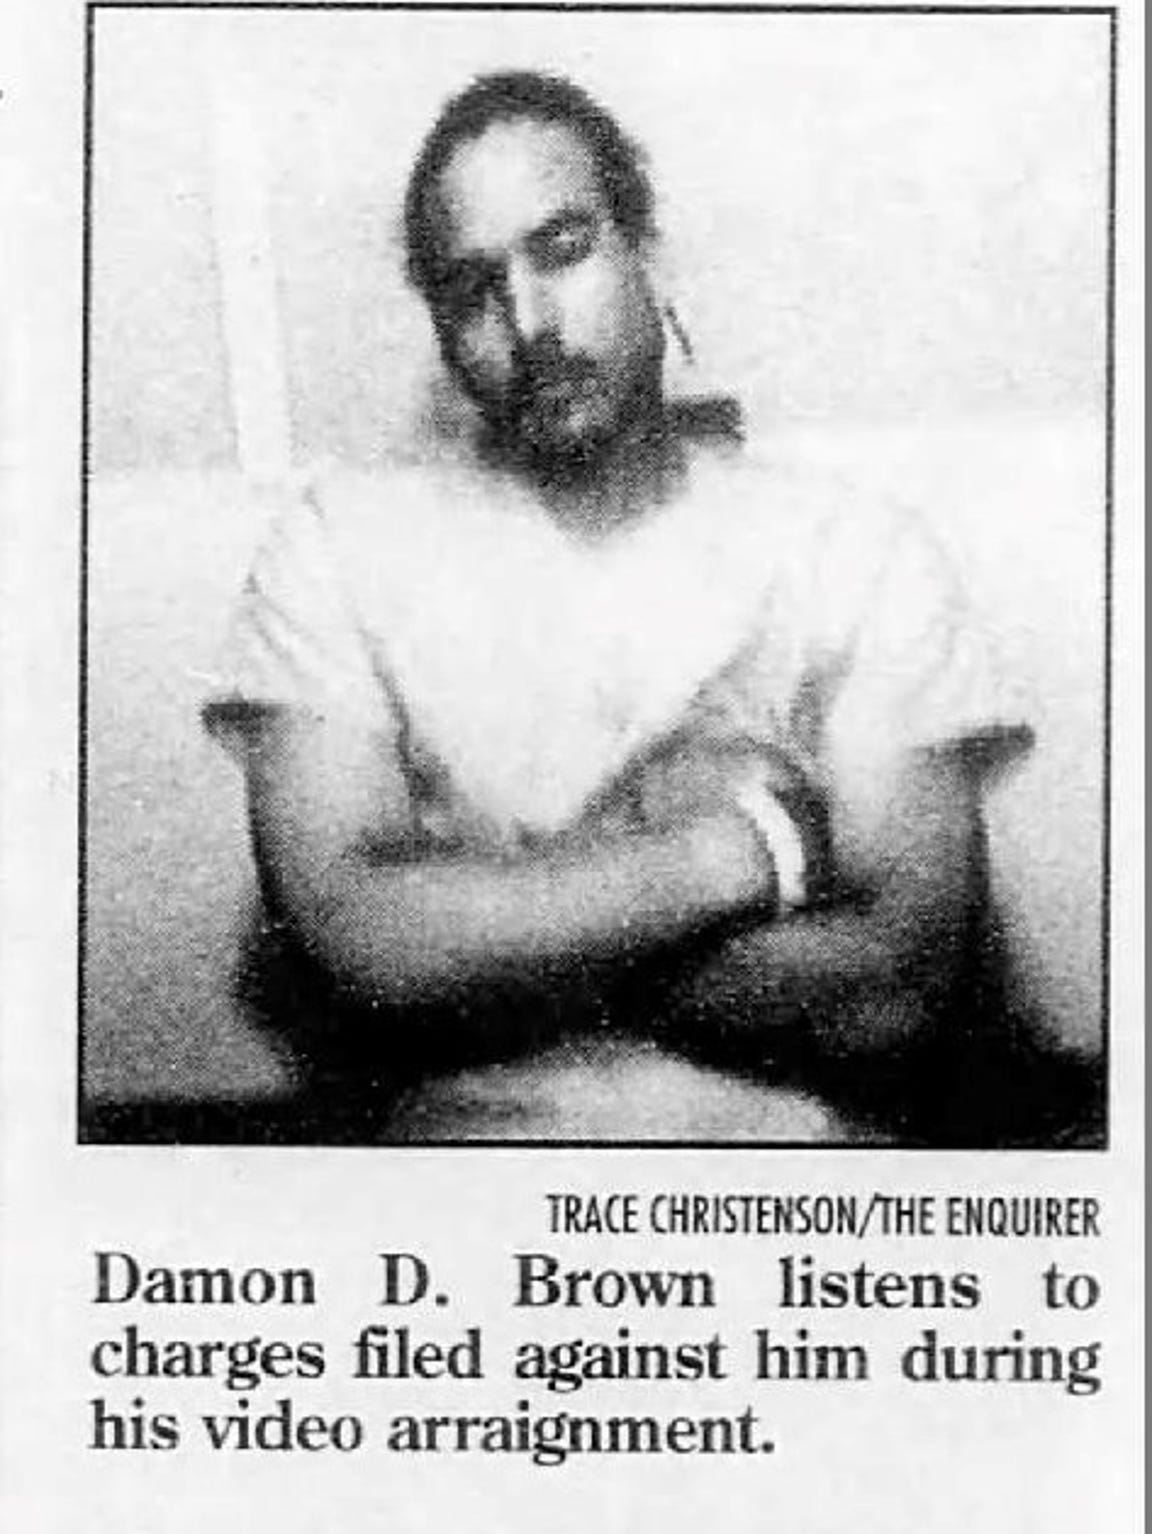 In this 1996 photo, Damon Brown listens to charges